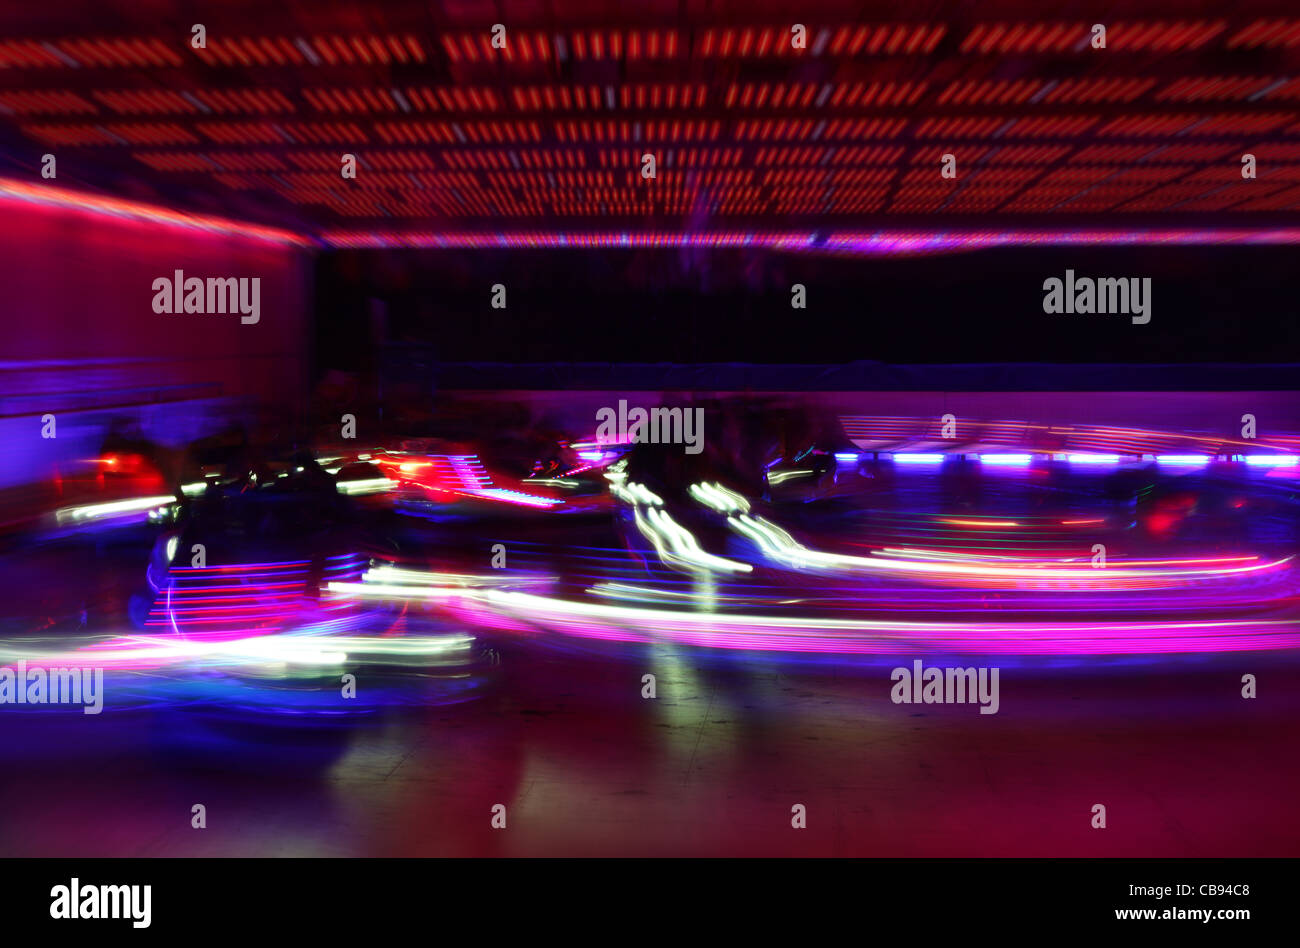 Dodgem cars in motion Banque D'Images